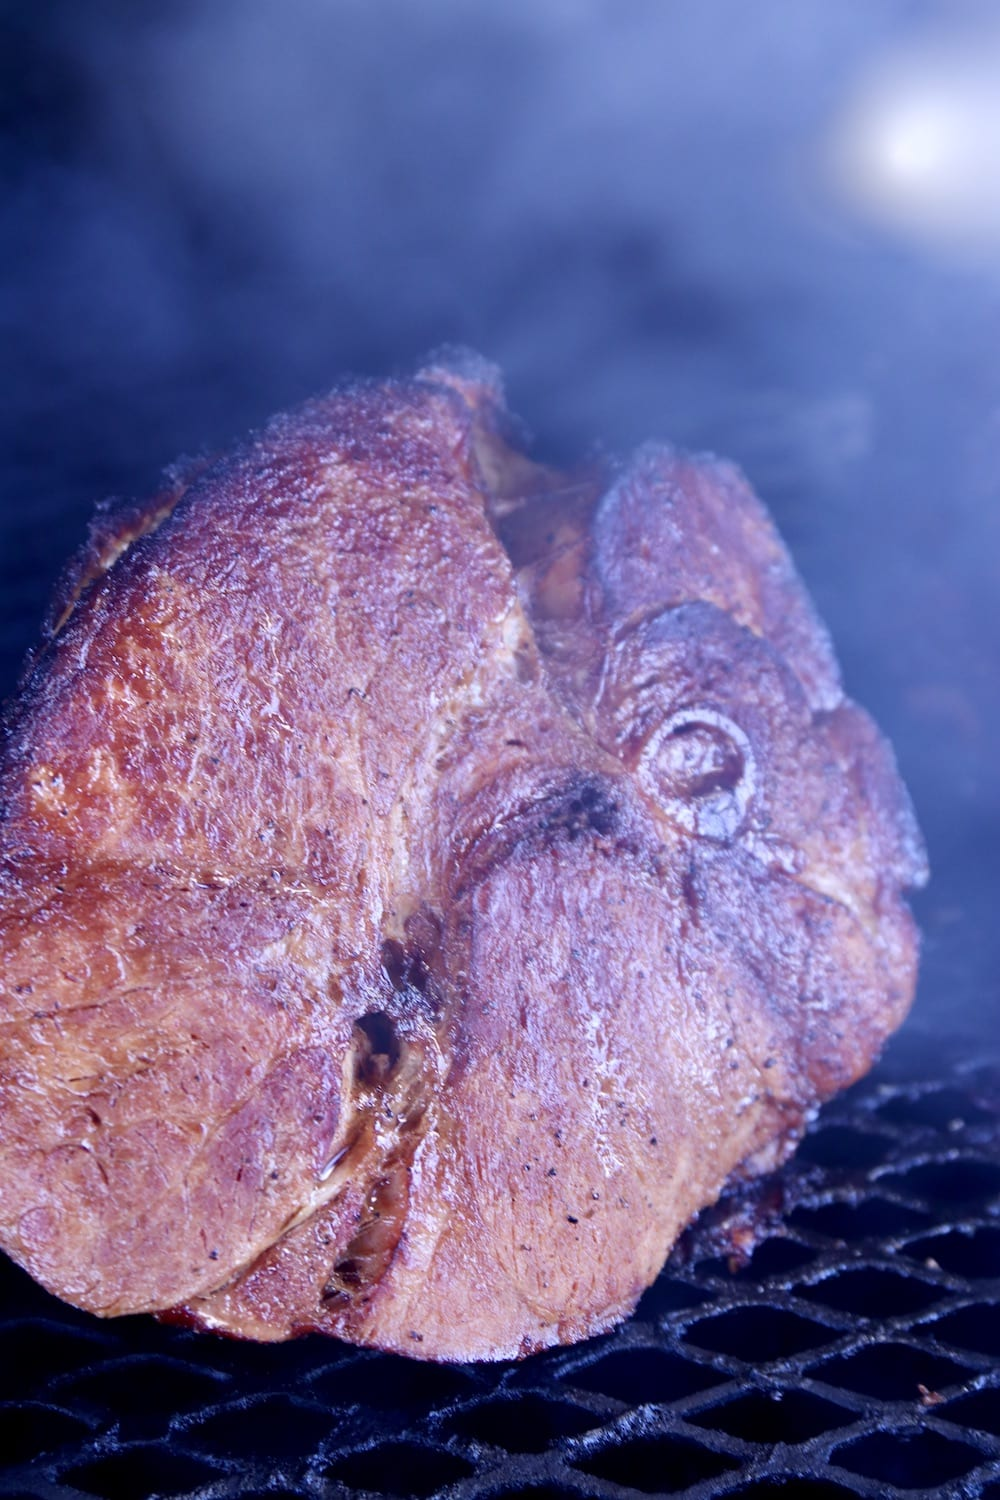 Grilling ham with hickory smoke